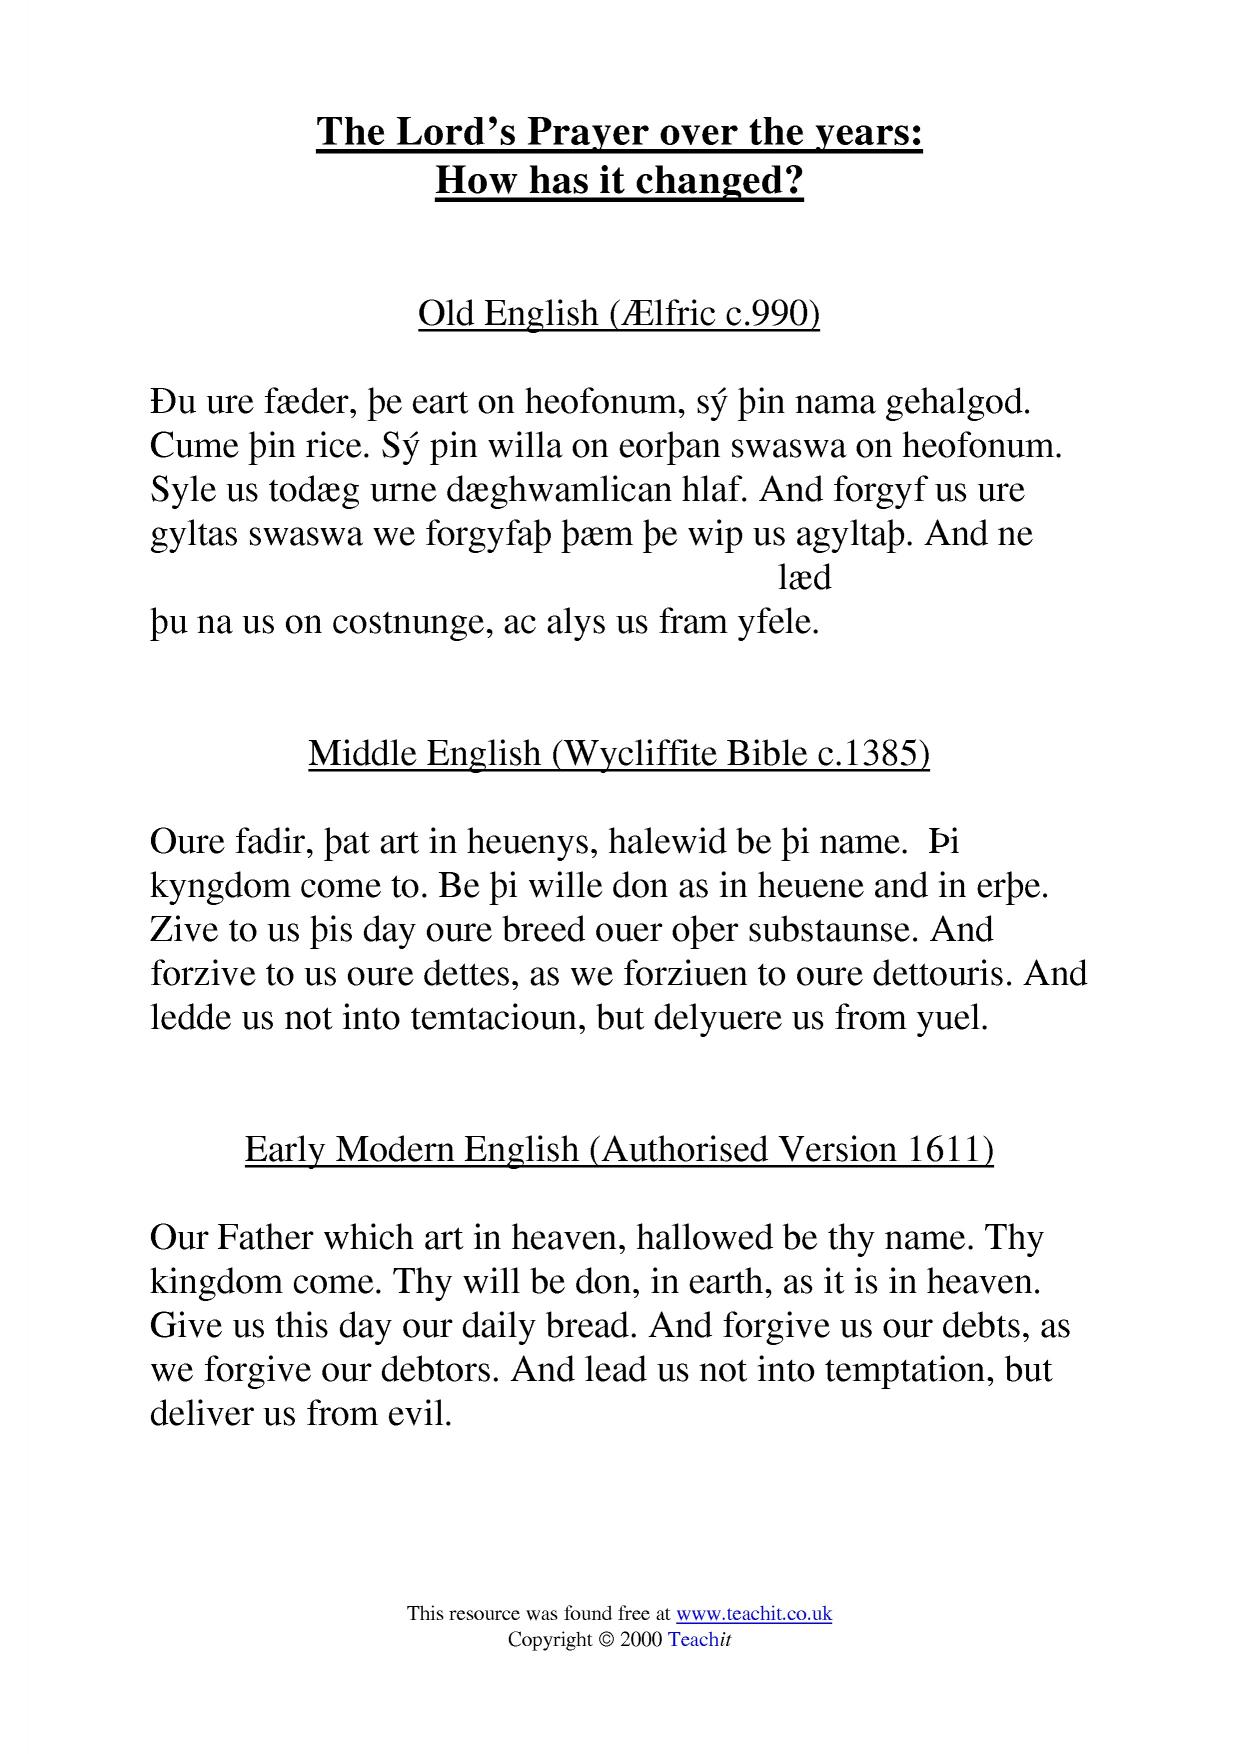 the lord u0027s prayer language change over time home page